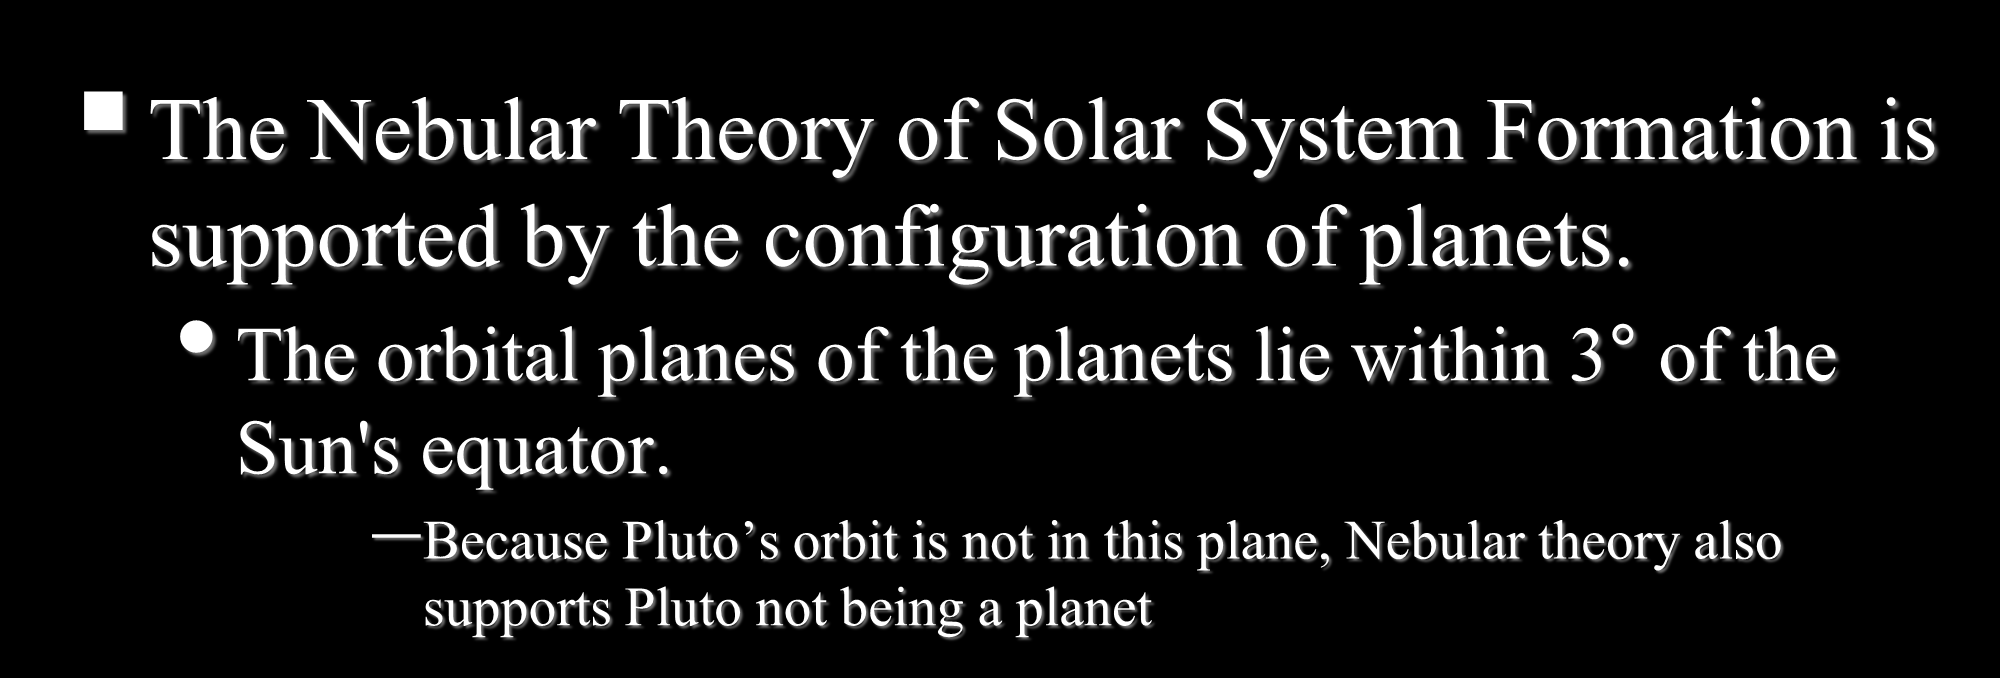 The orbital planes of the planets lie within 3 of the Sun's equator.